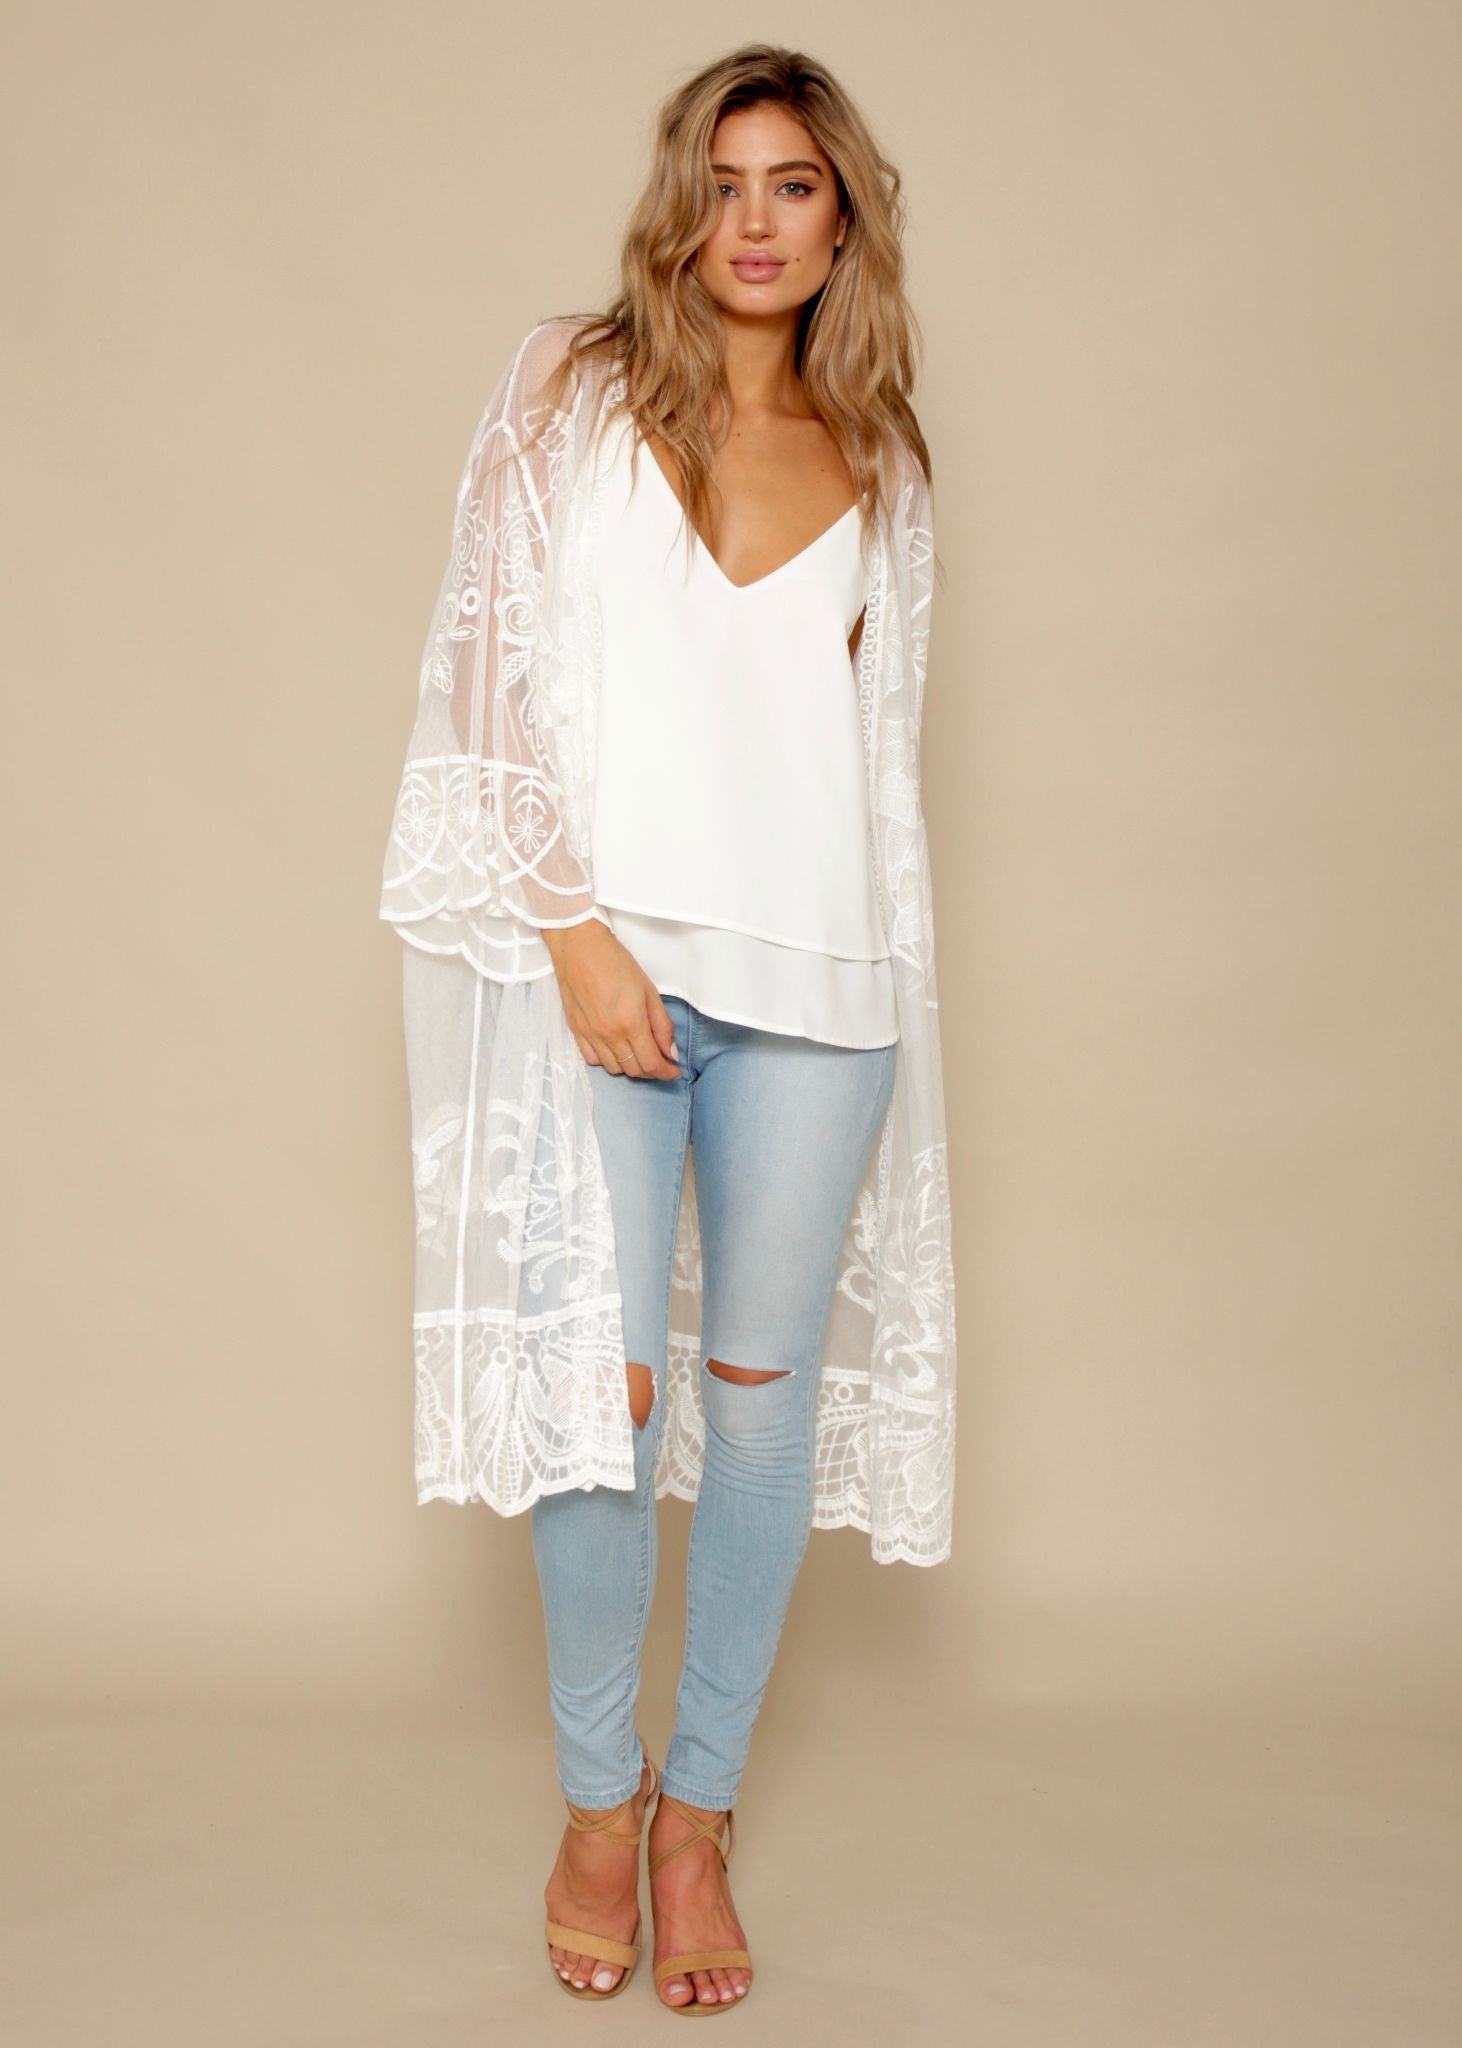 Wildflowers Lace Cape - White